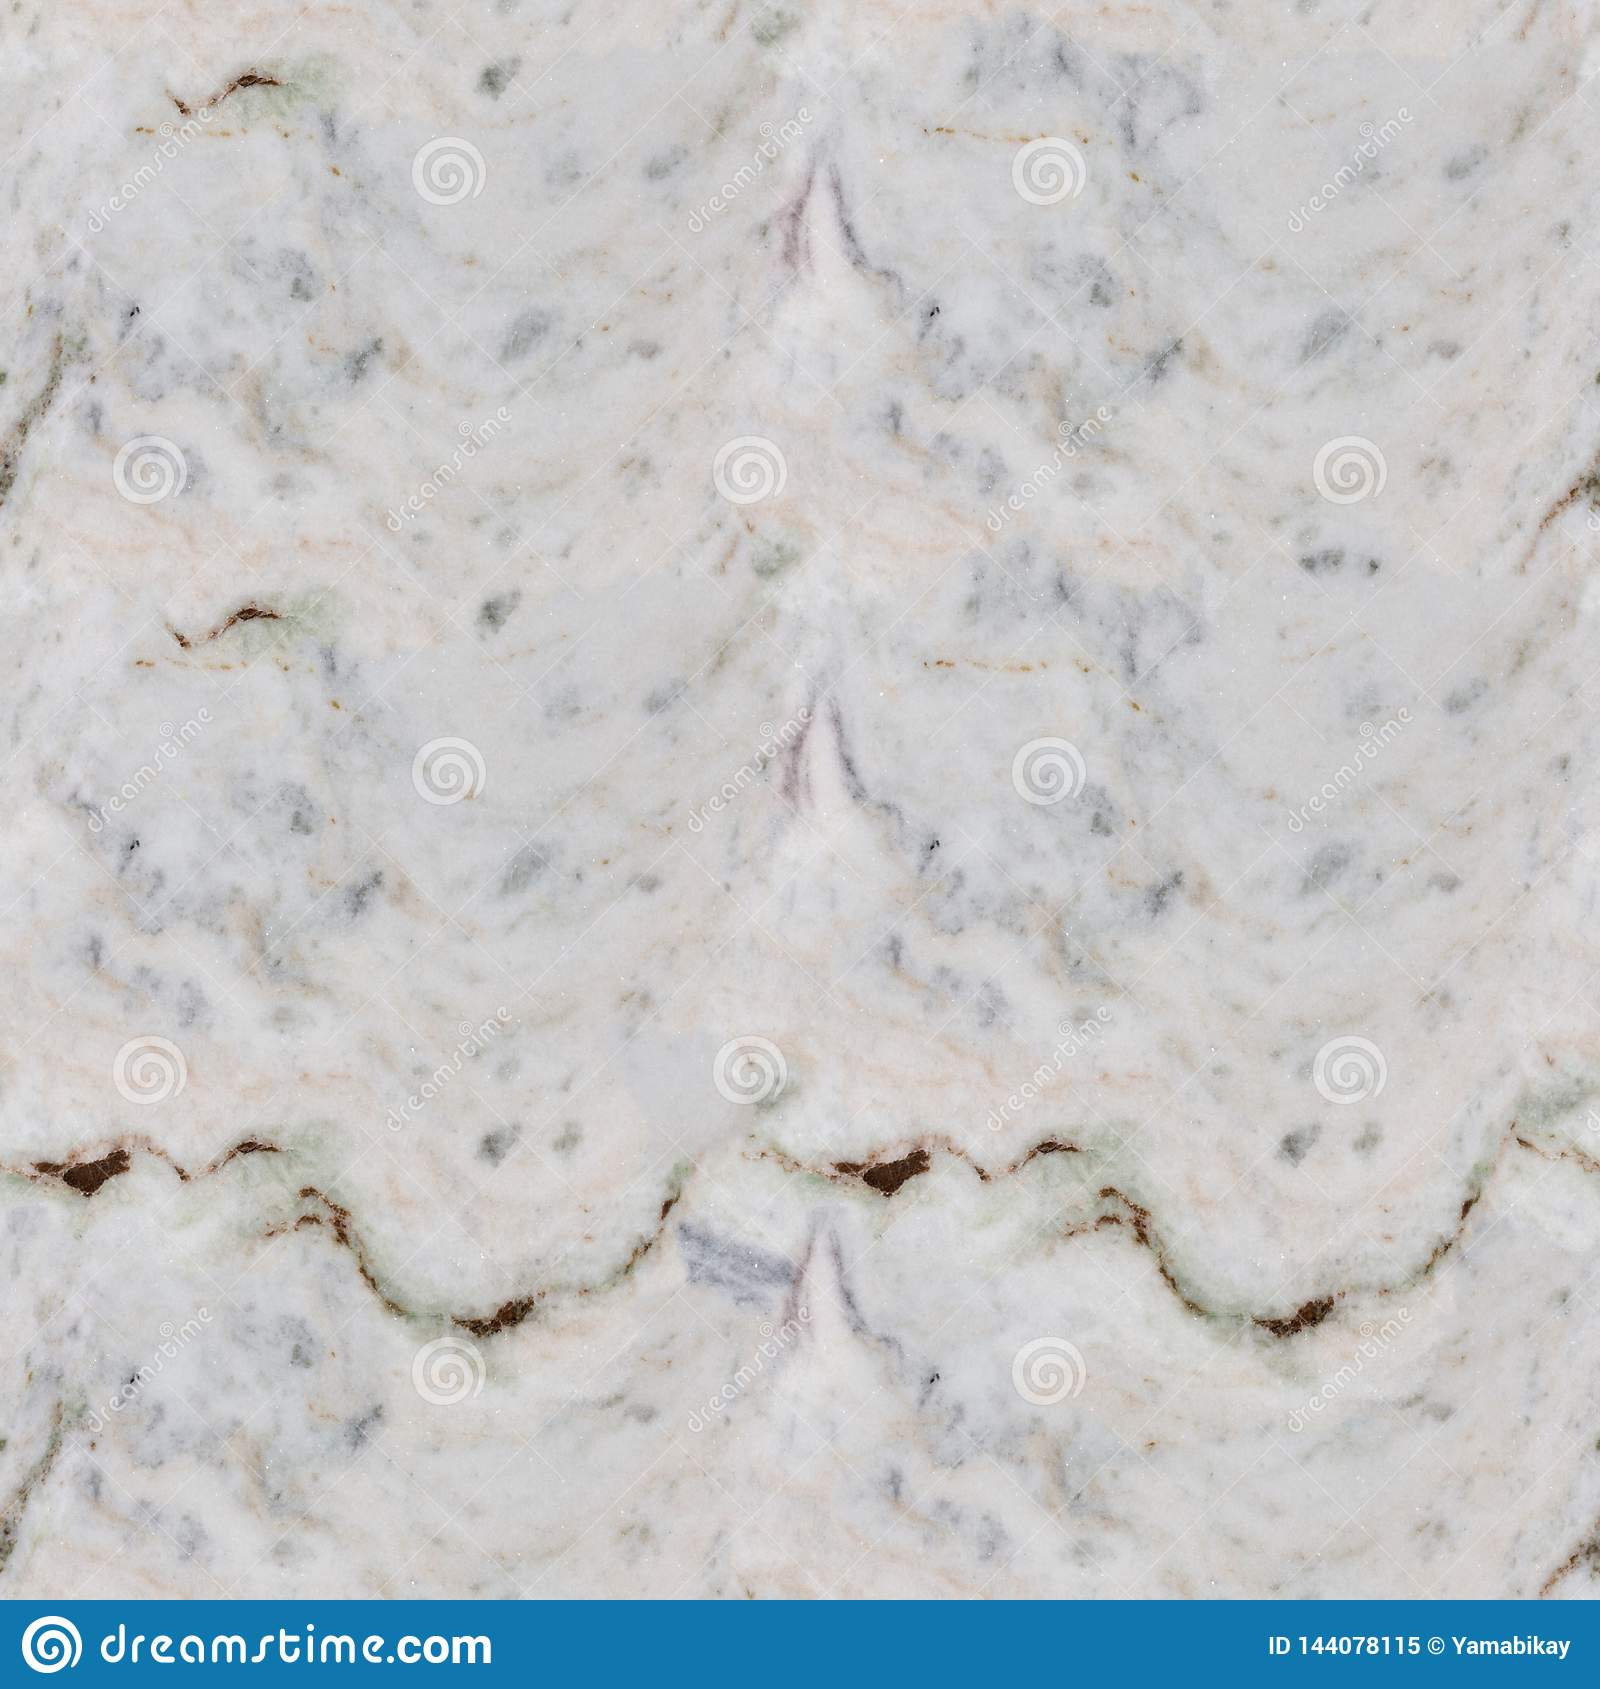 Close up of marble texture pattern. Seamless square background, tile ready.